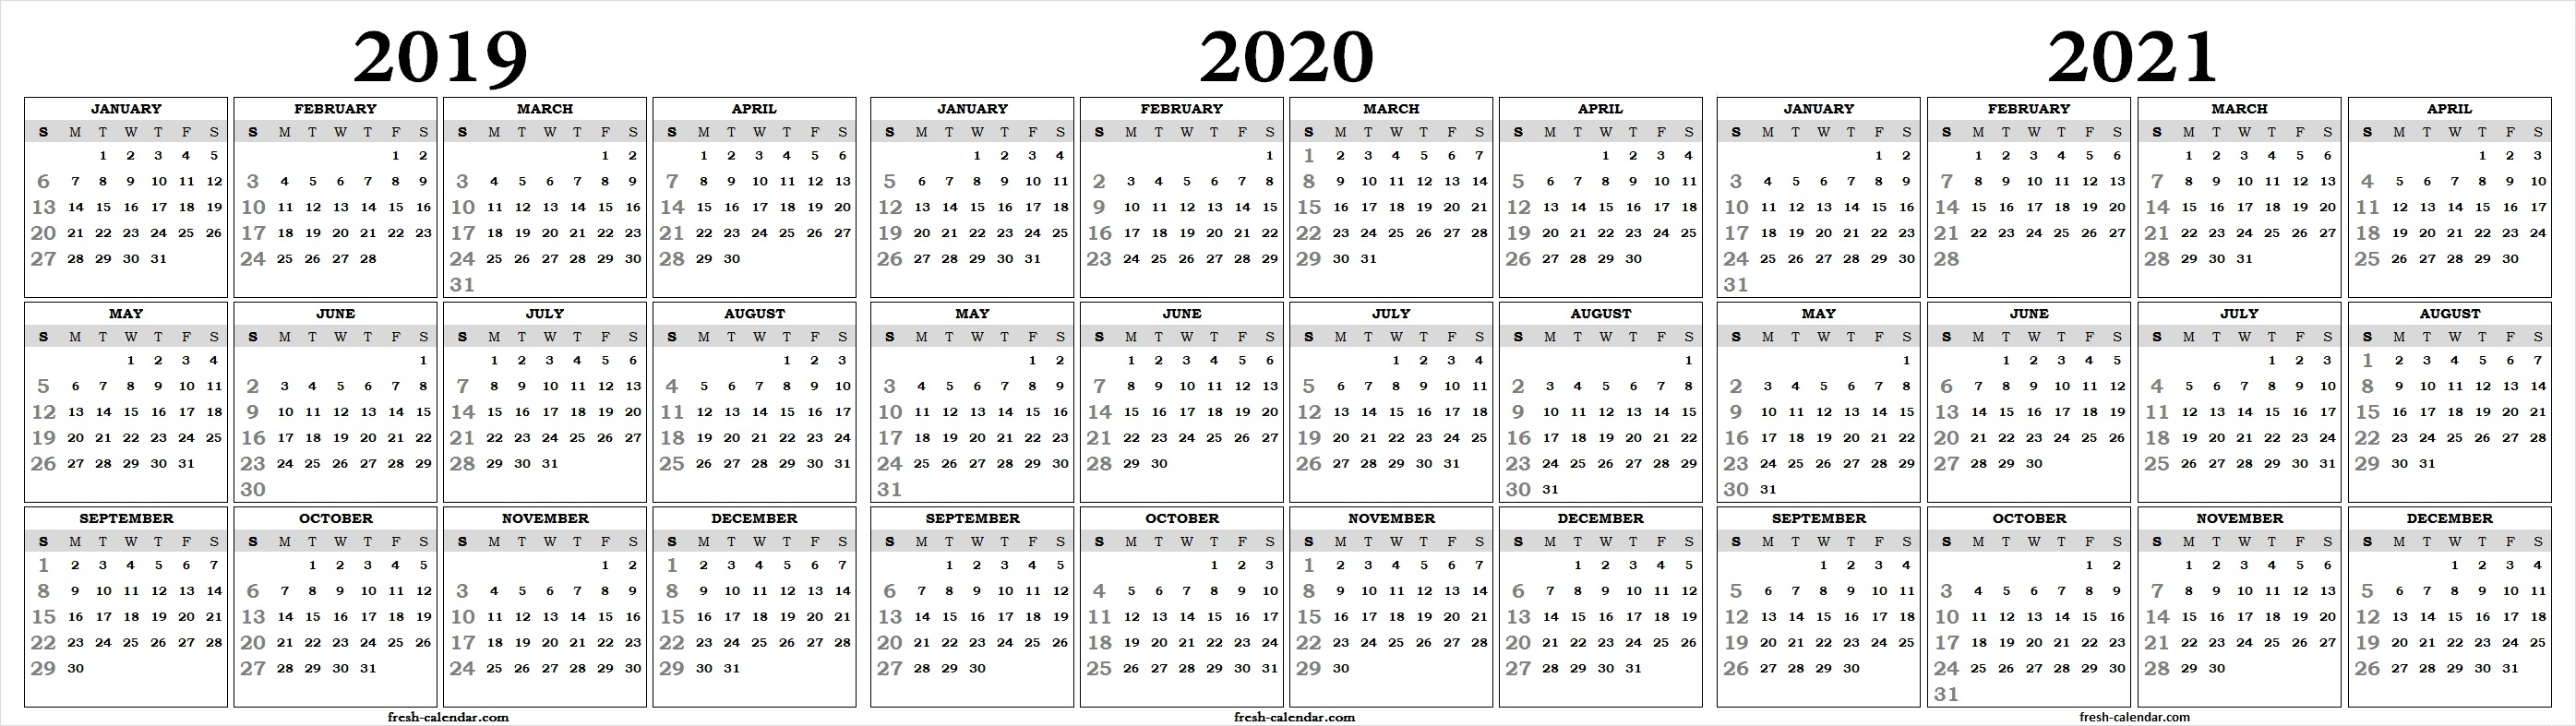 Fine 3 Year Calendar 2019 To 2021 : Mini Calendar Template within 3 Year Calendar 2020 To 2021 Printable